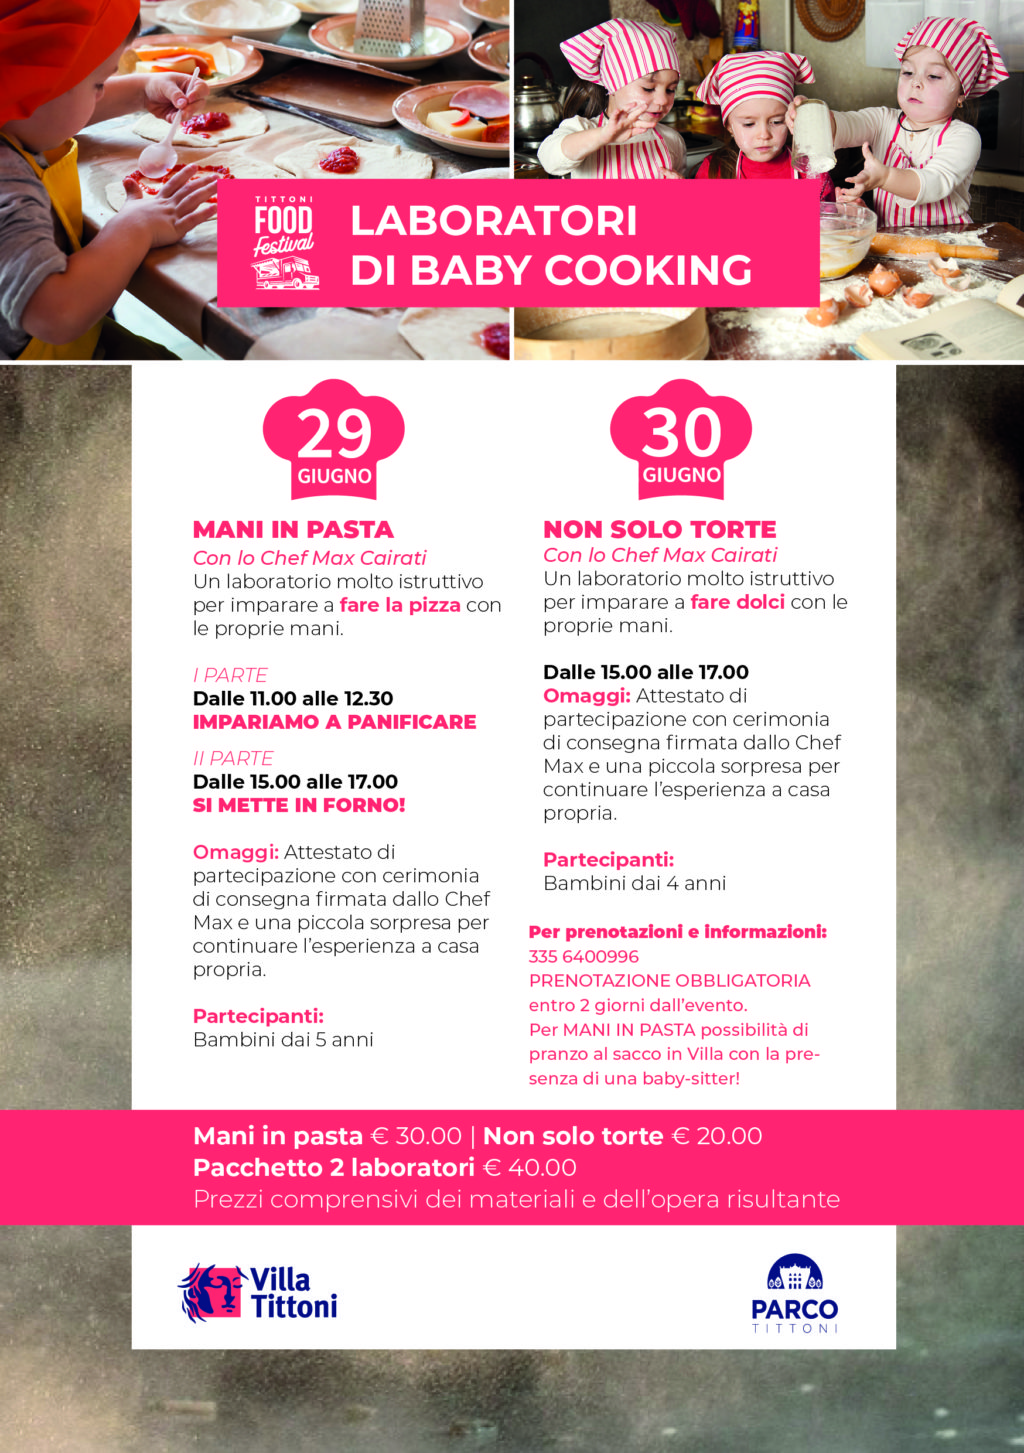 LABORATORI DI BABY COOKING